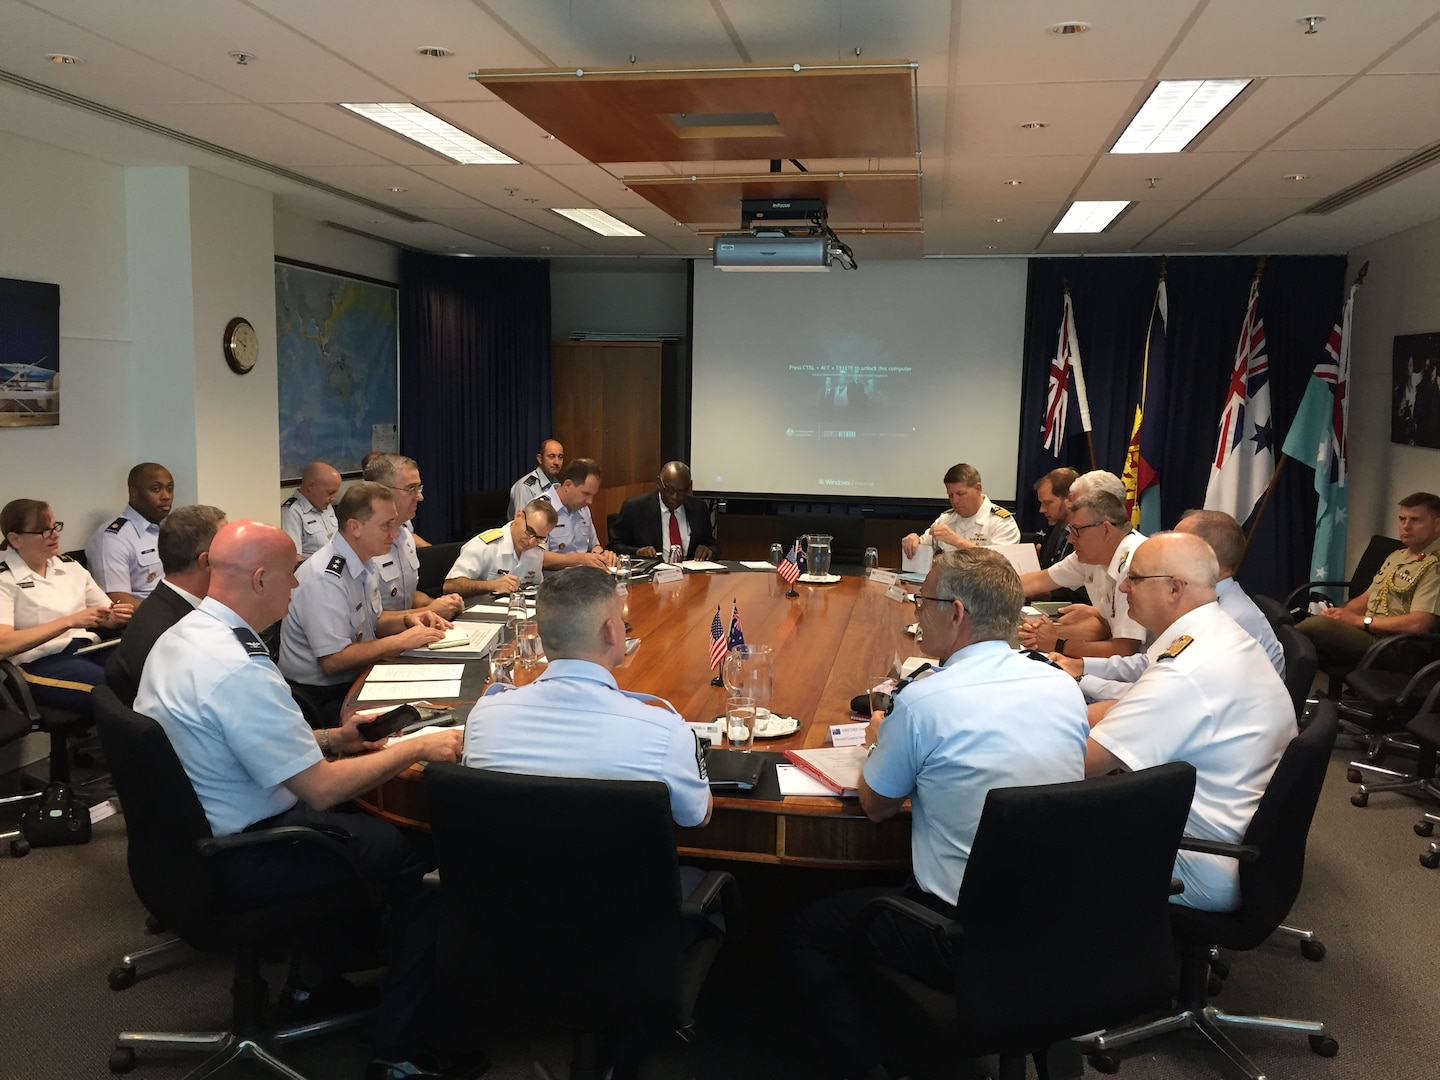 U.S. Air Force Gen. John E. Hyten, commander of U.S. Strategic Command (USSTRATCOM), with USSTRATCOM delegation, and Royal Australian Navy Vice Adm. Ray Griggs, vice chief of the Australian Defence Force with Australian Defence Force delegation, attend the USSTRATCOM-Australia Defence Organization bi-lateral engagement in Canberra, Australia, Jan. 17, 2017. The visit aligns with USSTRATCOM's priority to enhance interoperability between U.S. and Australian forces; expand cooperation in space, cyberspace, intelligence and missile defense; and identify future opportunities for cooperation and engagement. One of nine DoD unified combatant commands, USSTRATCOM has global strategic missions assigned through the Unified Command Plan that include strategic deterrence; space operations; cyberspace operations; joint electronic warfare; global strike; missile defense; intelligence, surveillance and reconnaissance; and analysis and targeting.